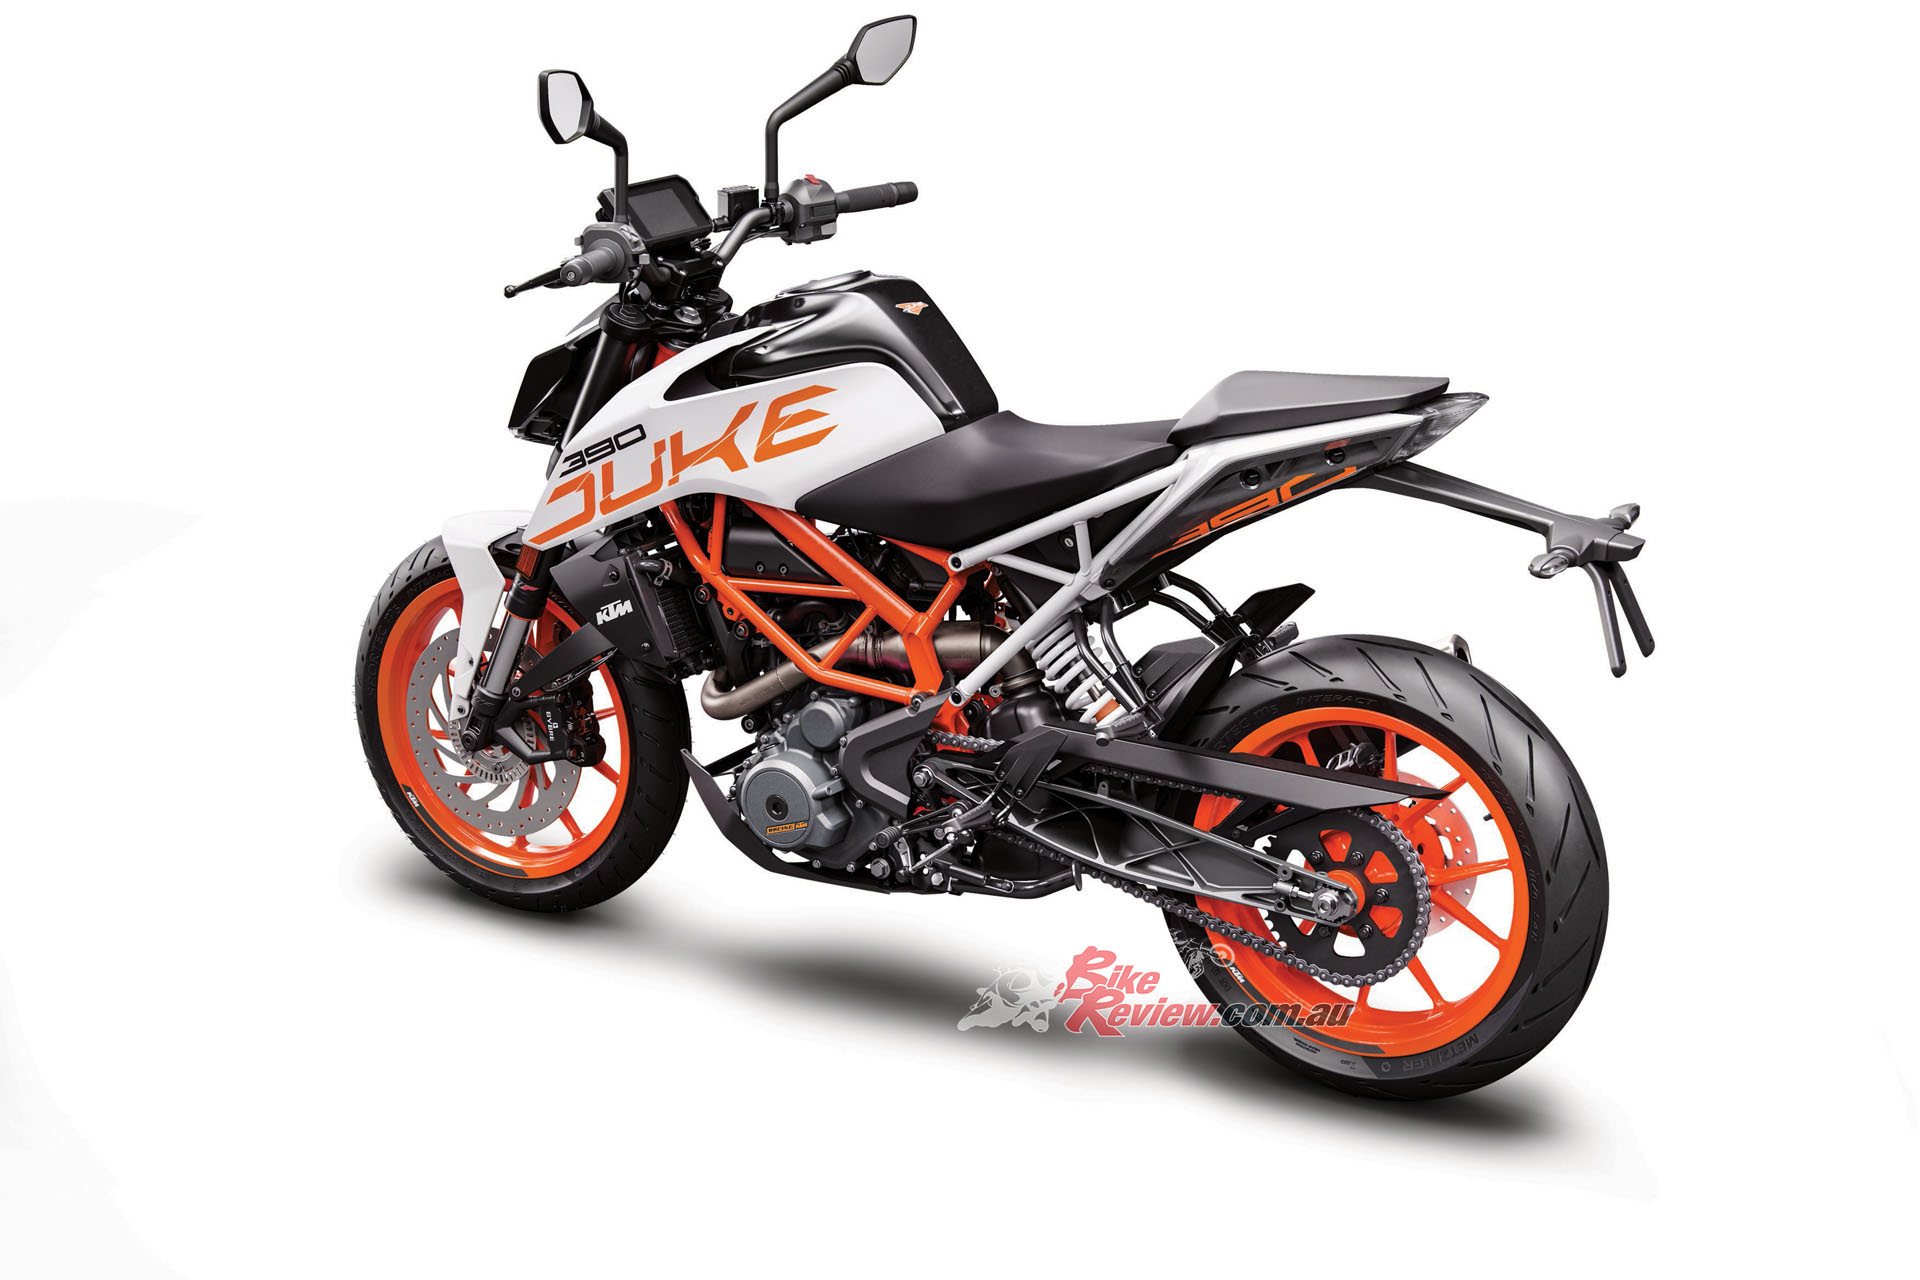 This truly is the mini-Super Duke, with great thrills and an extremely light overall weight